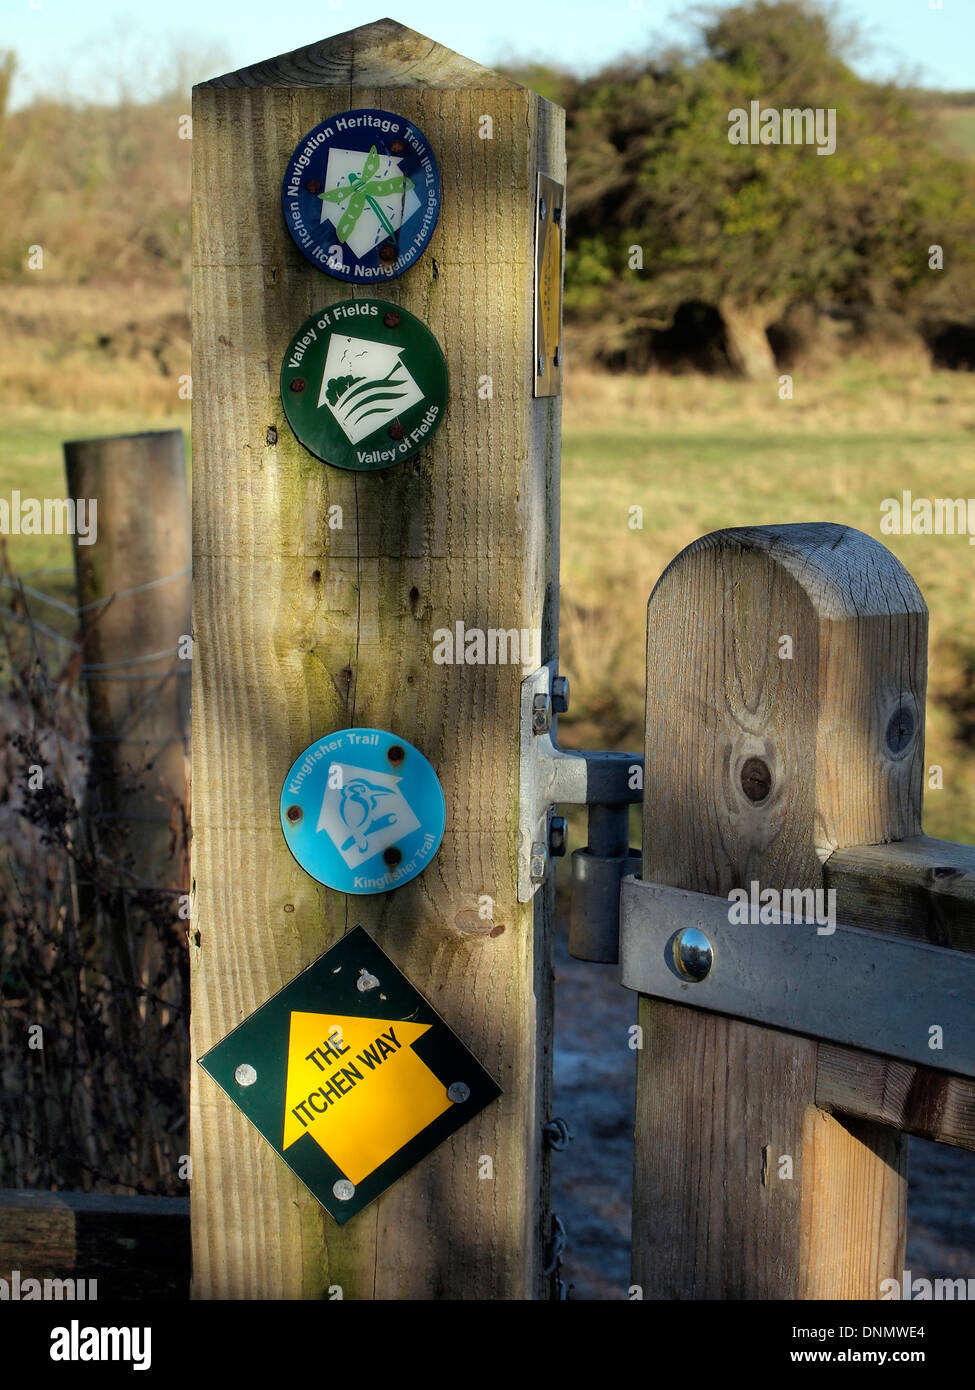 Footpath signs at a gate on the Itchen Way footpath near Shawford showing the various routes available to walkers. - Stock Image